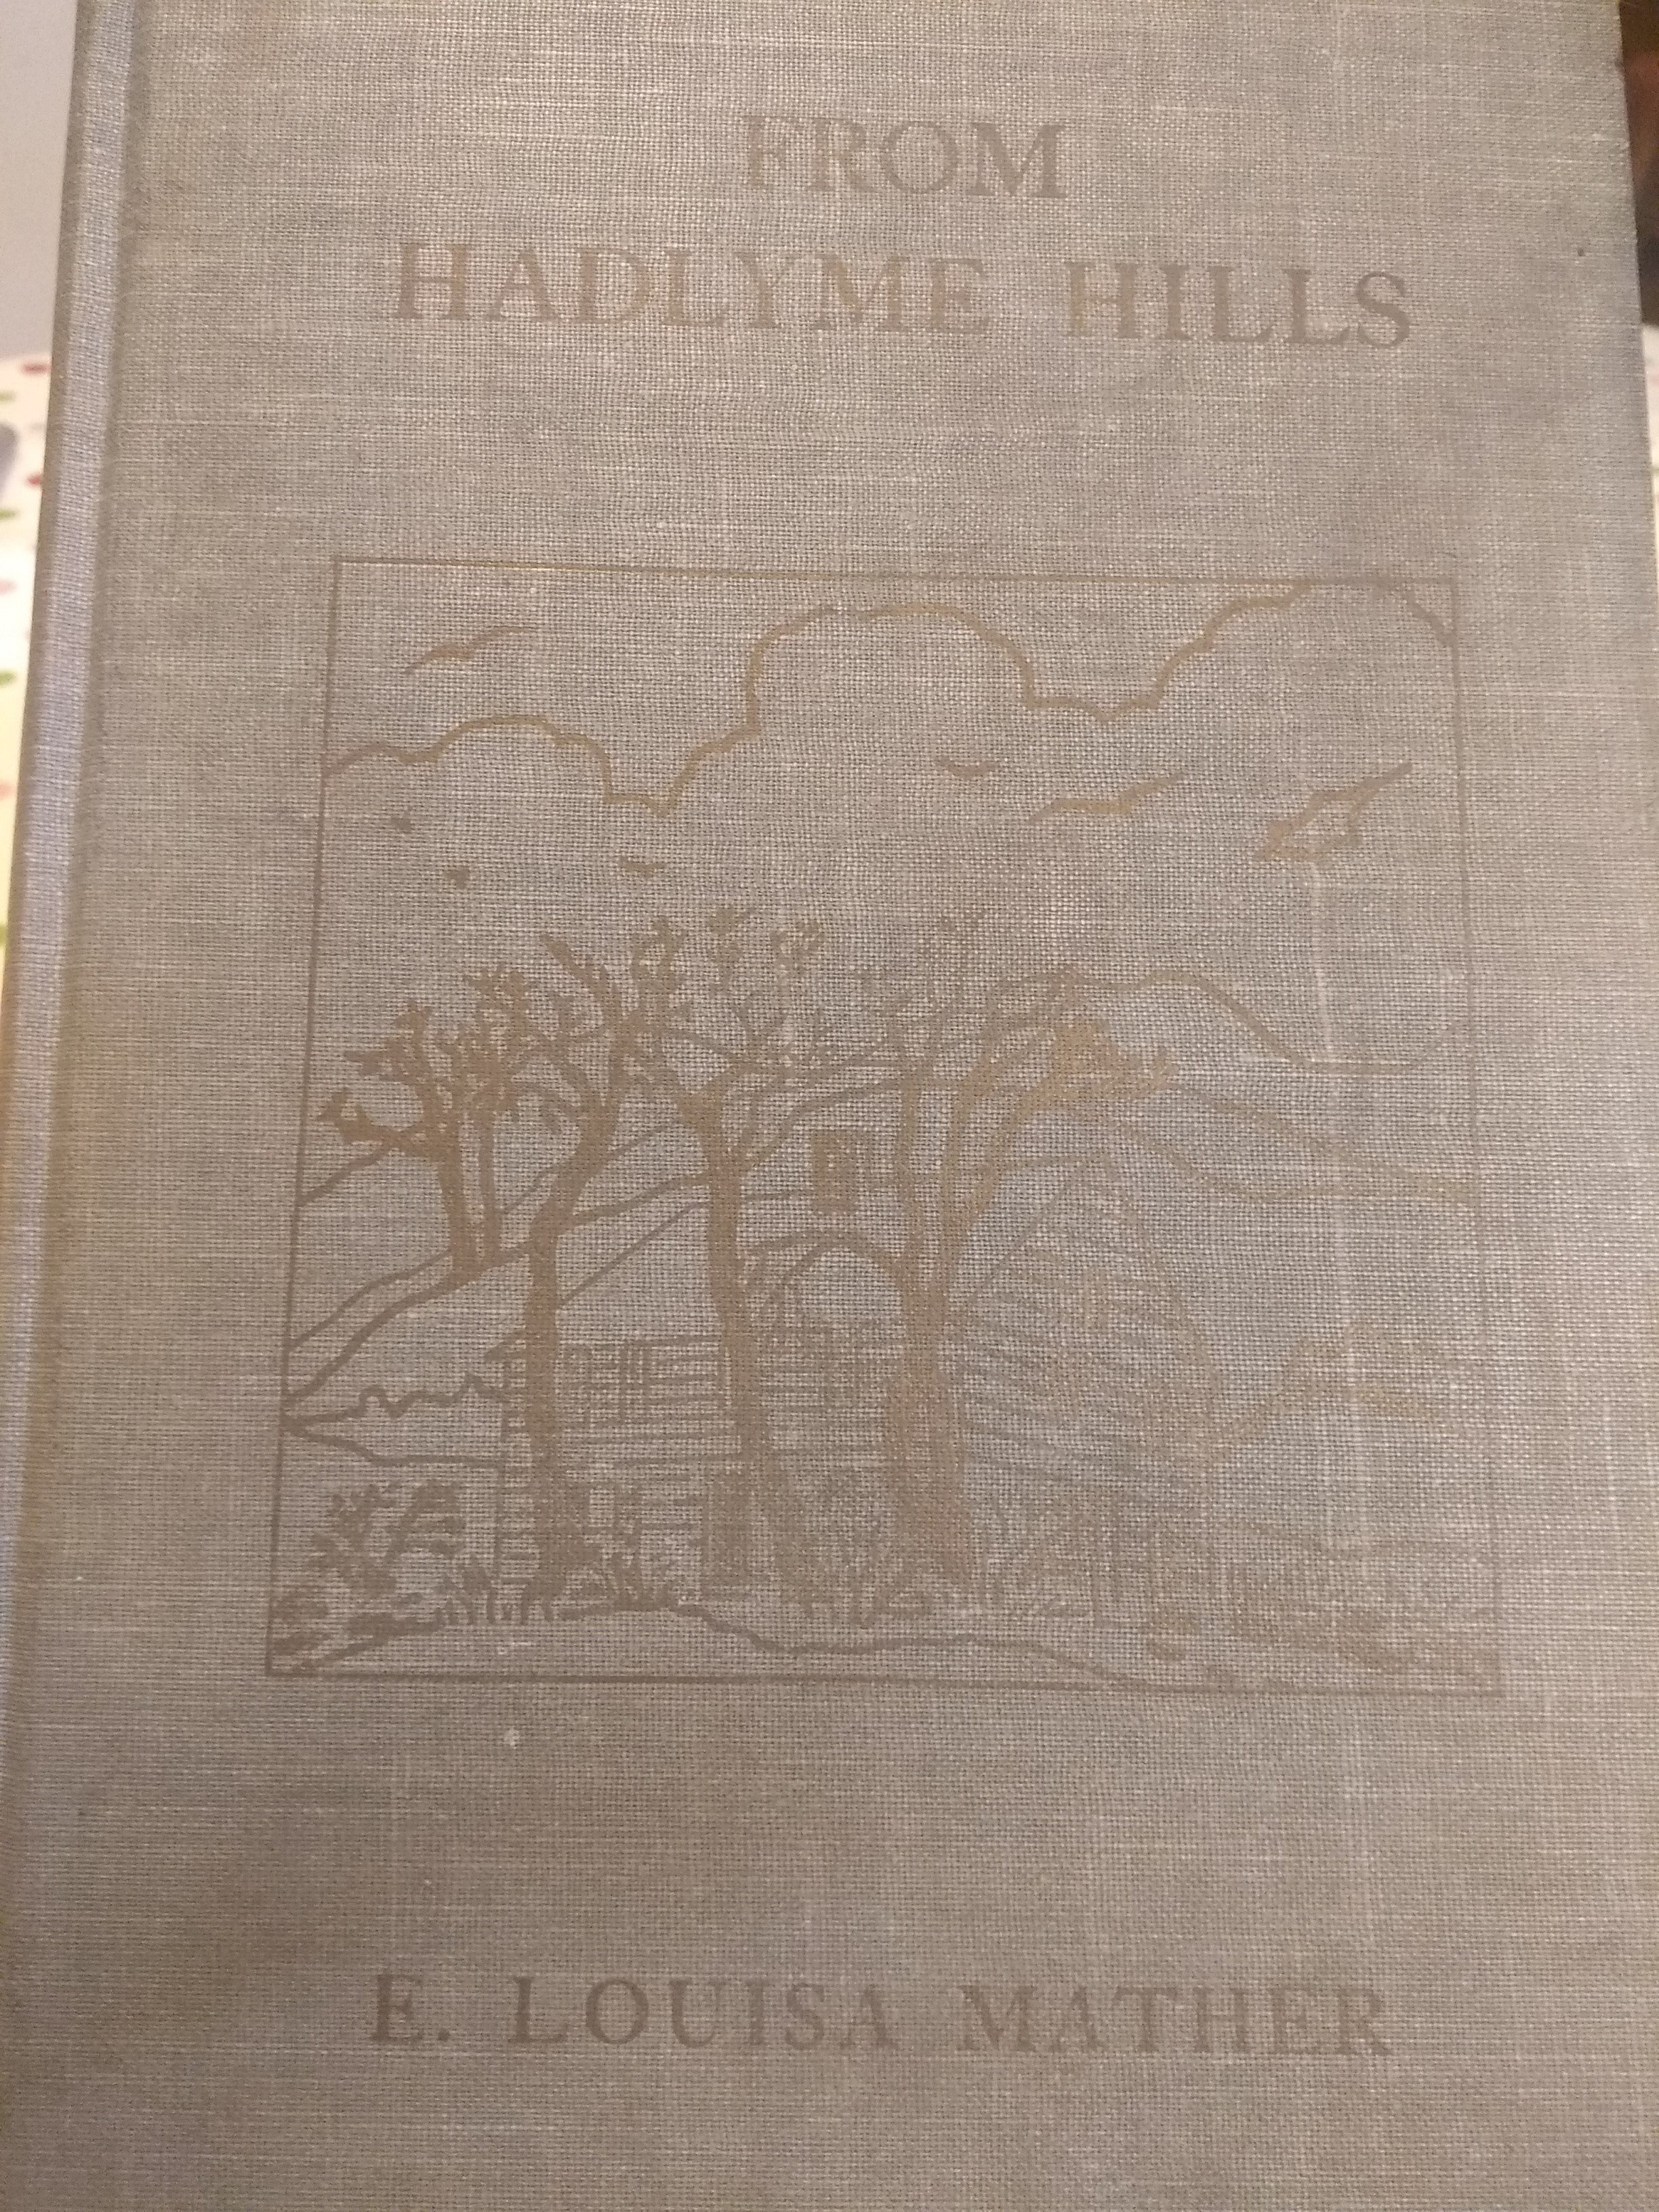 From Hadlyme Hills, by Louisa Mather